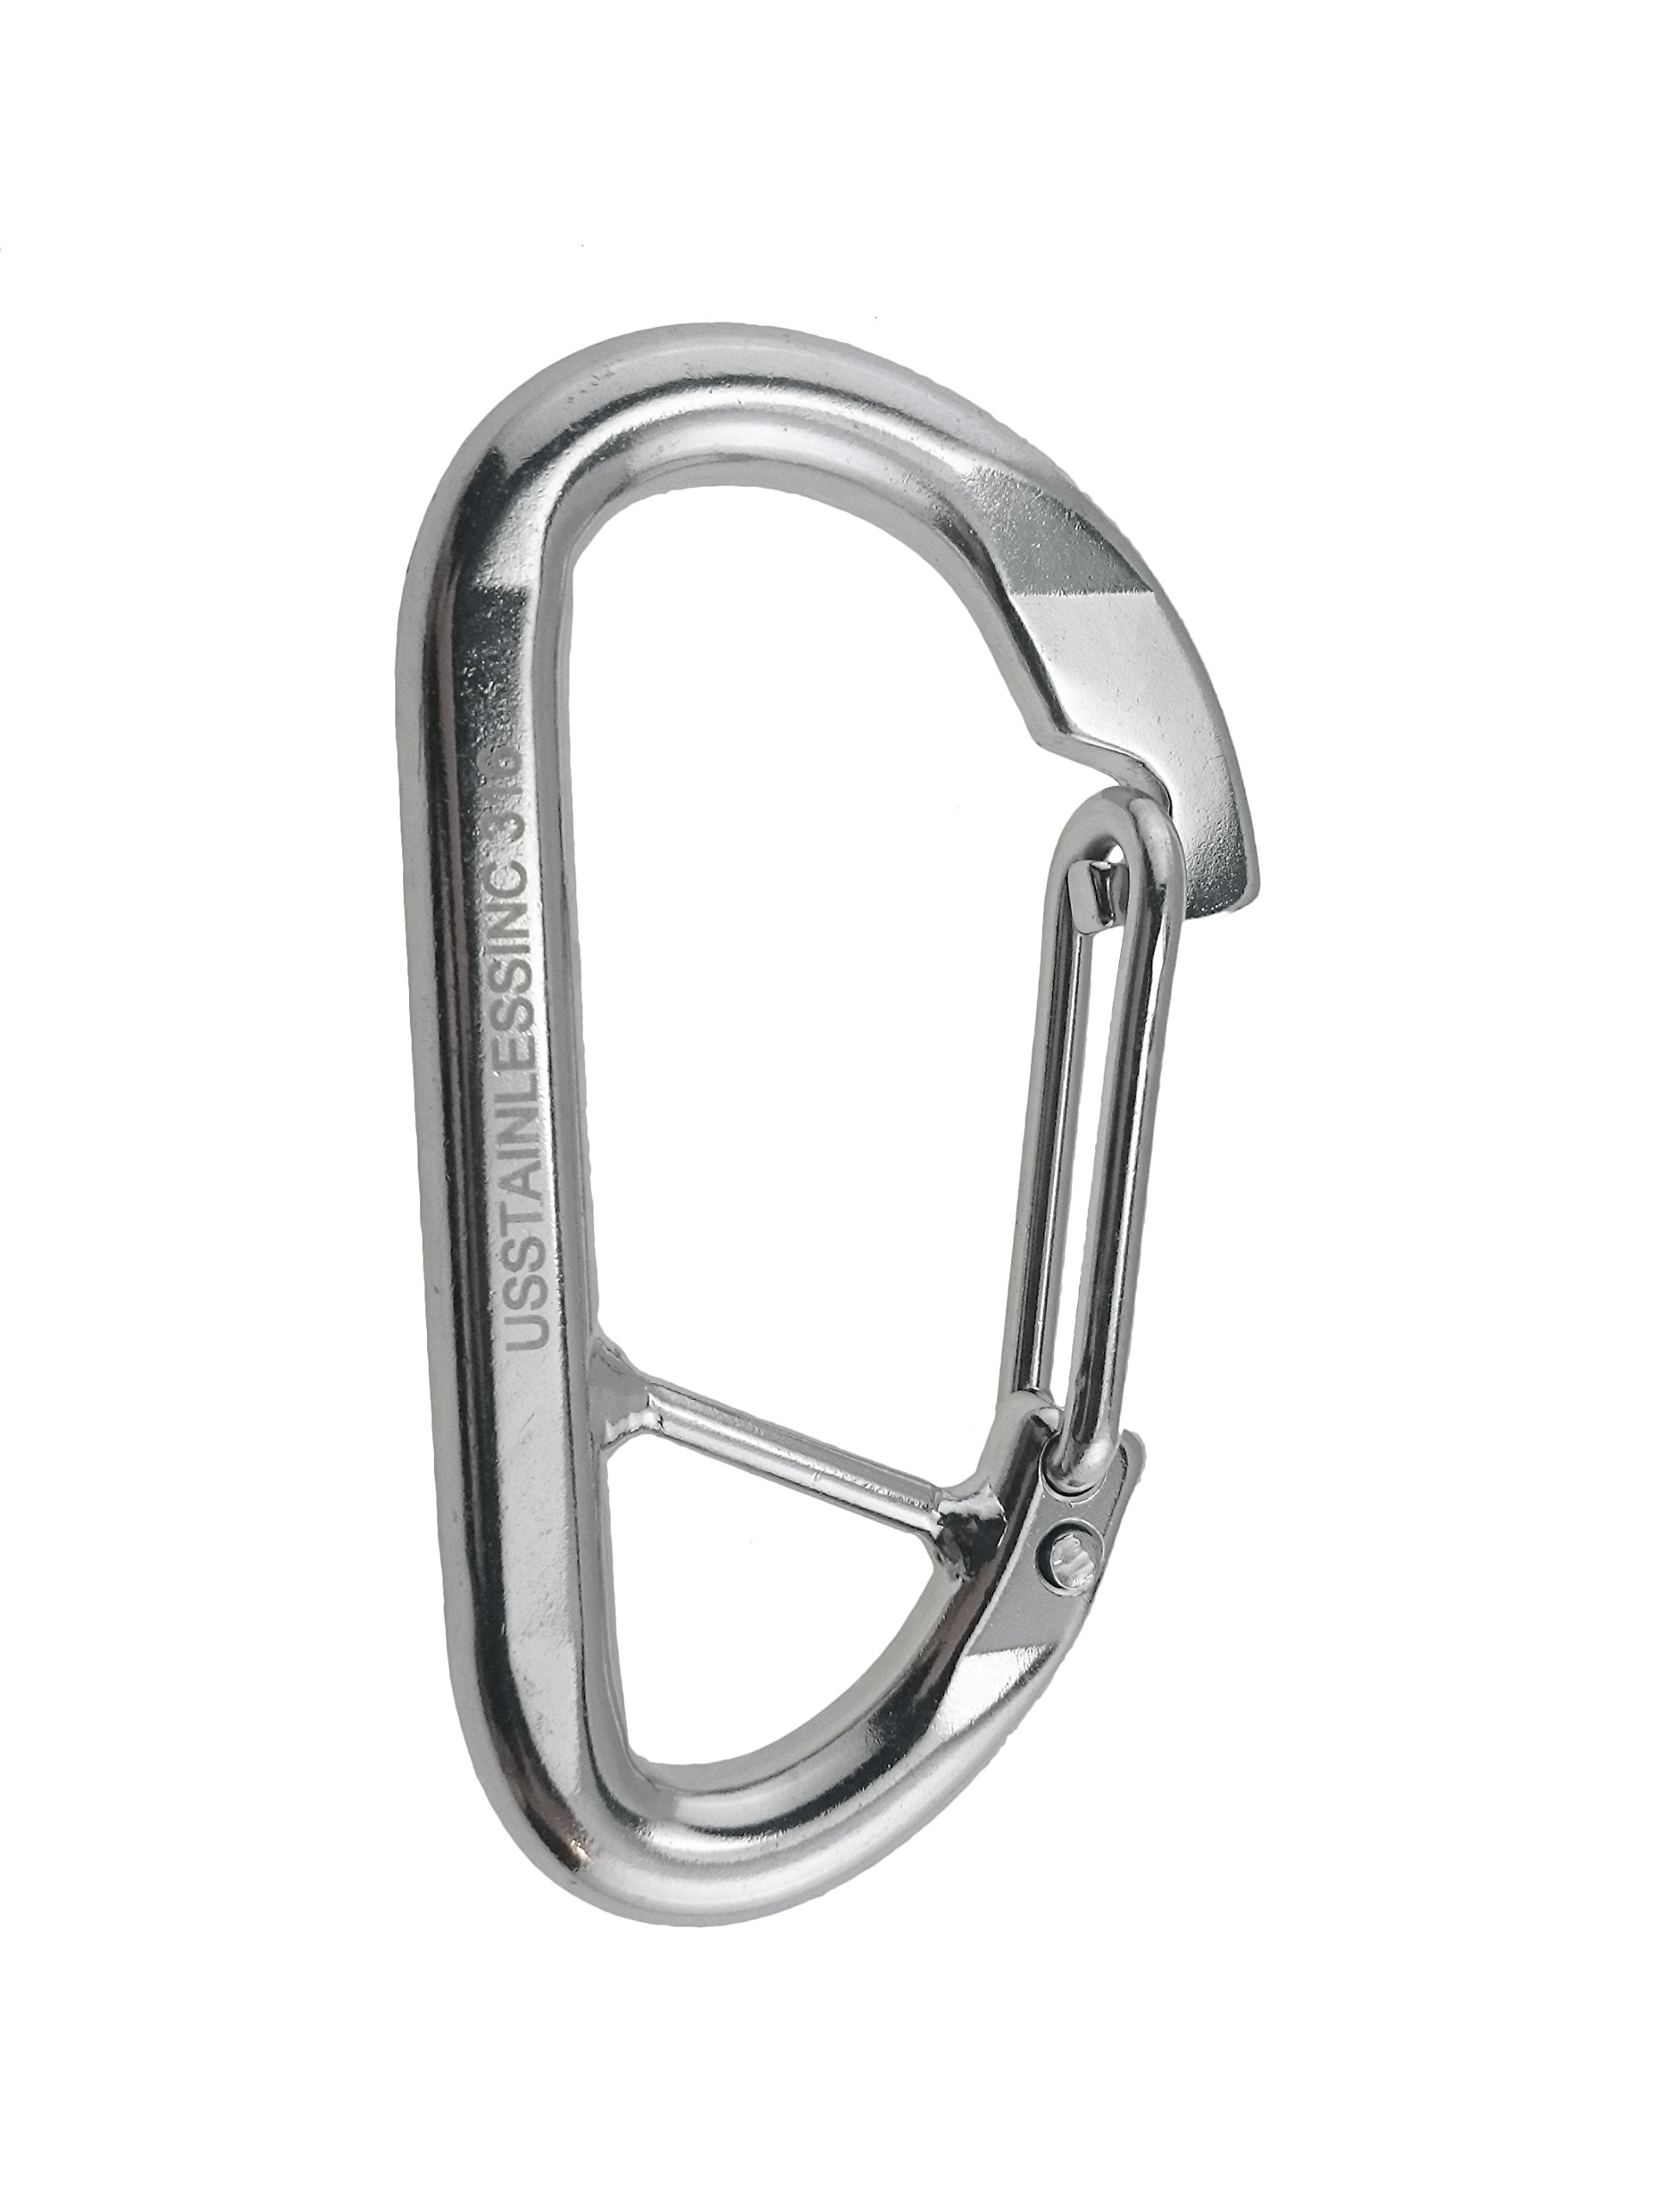 Stainless Steel 316 Spring Hook Carabiner 1/2'' (12mm) Marine Grade Safety Clip Forged